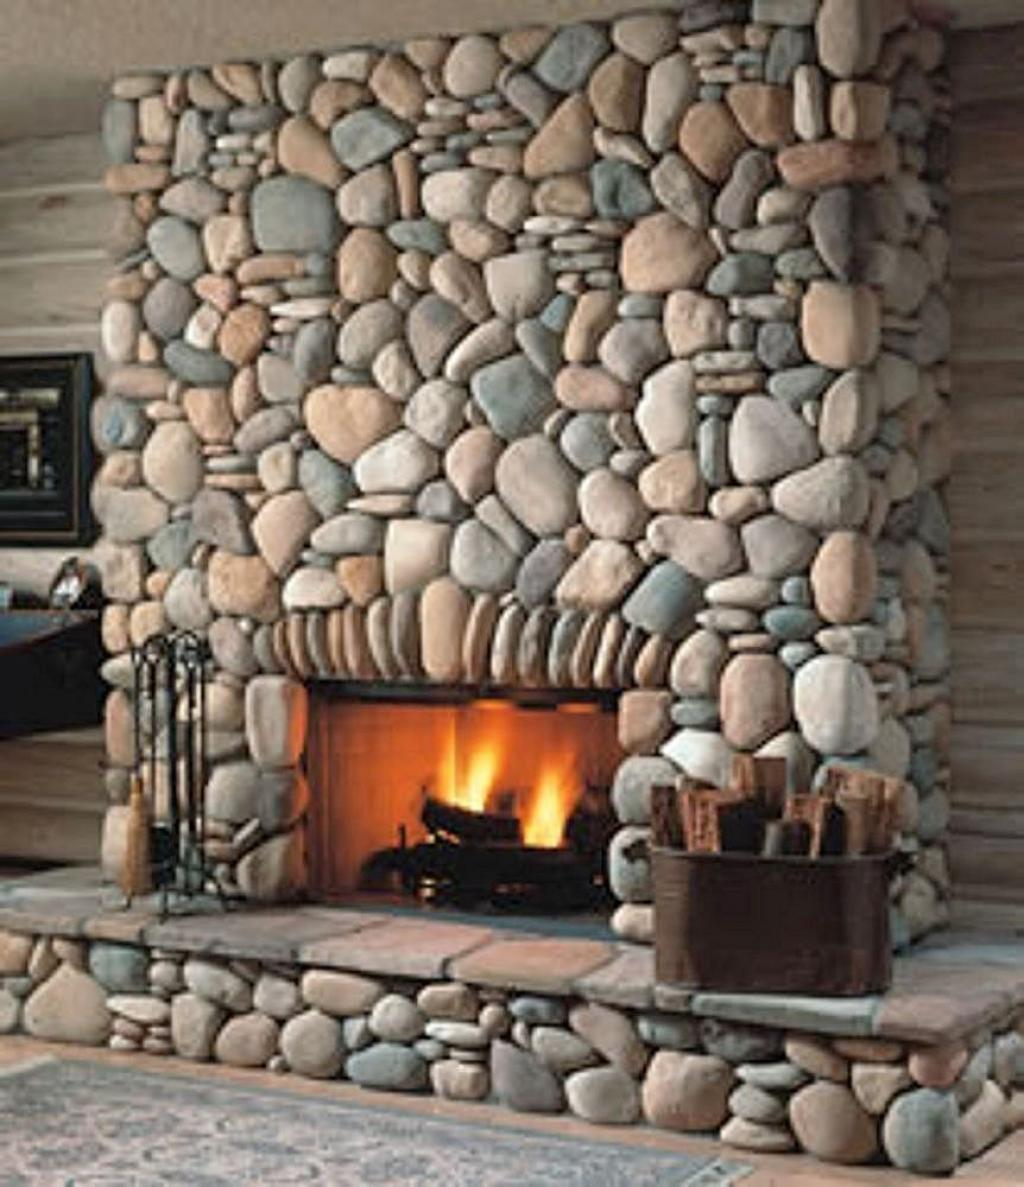 Stone Wall Design Ideas: Amiable Stone Veneer Decorative Fireplace Design In Modern